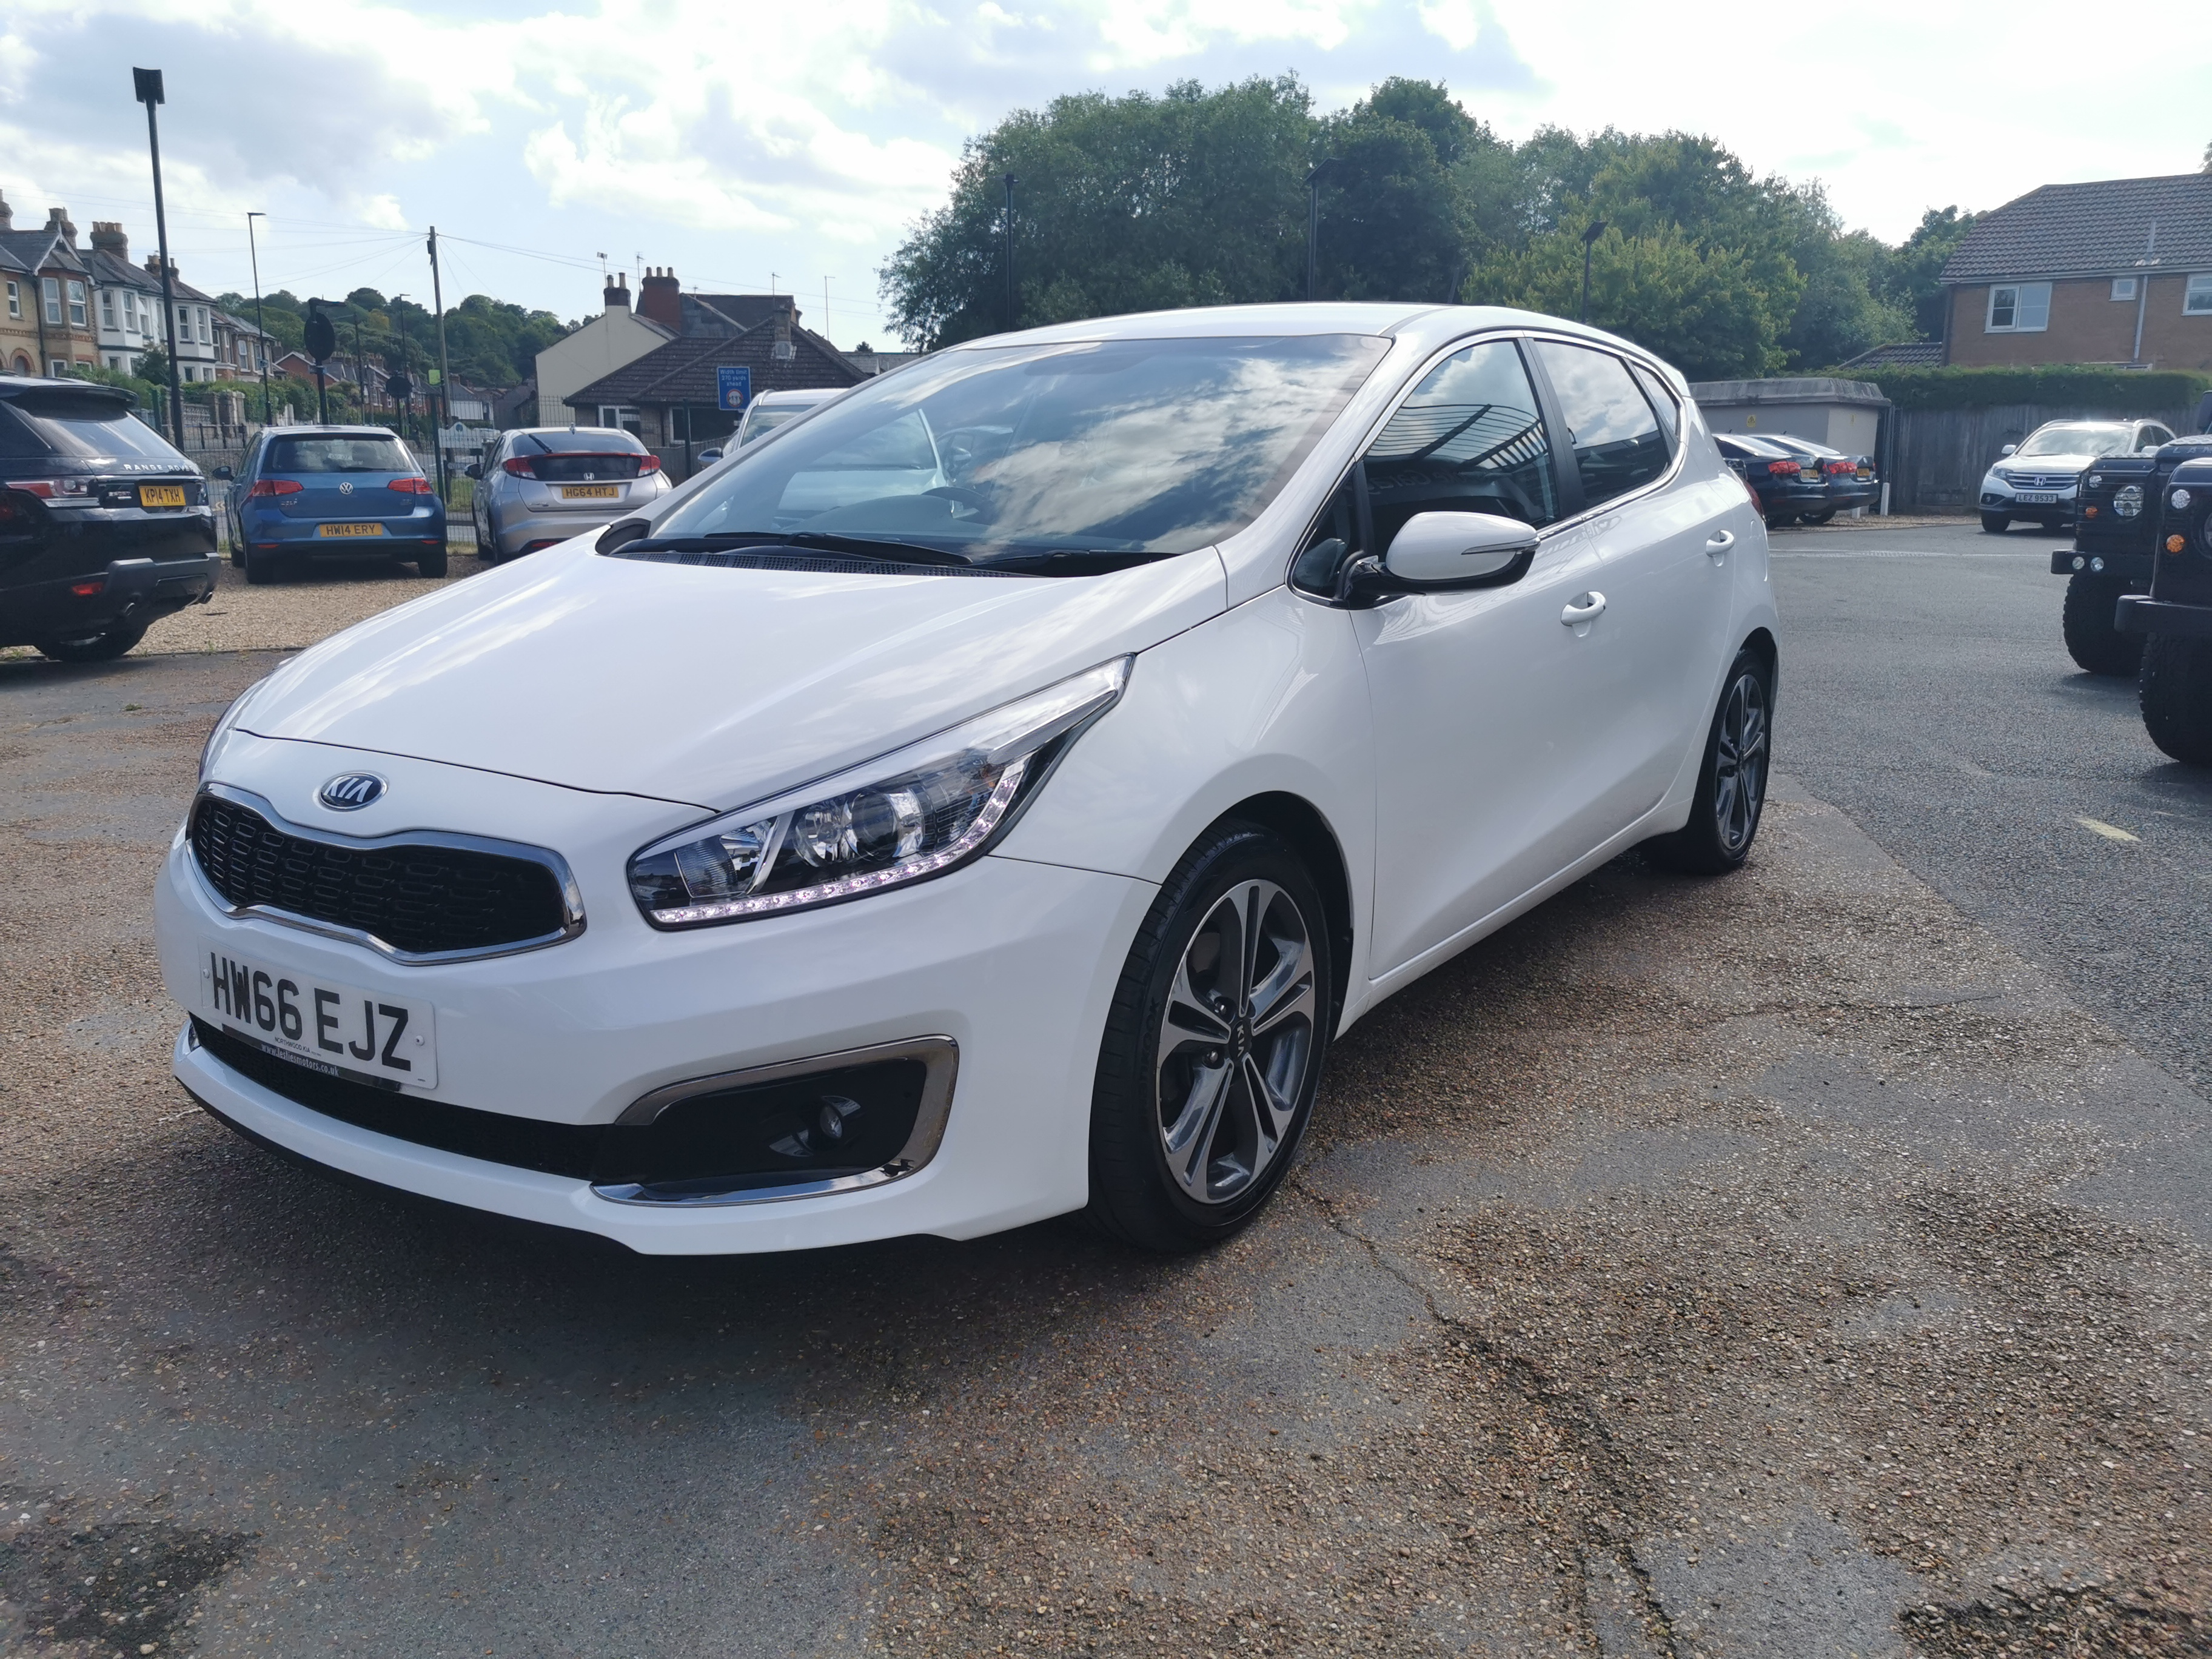 Car For Sale Kia Ceed - HW66EJZ Sixers Group Image #4